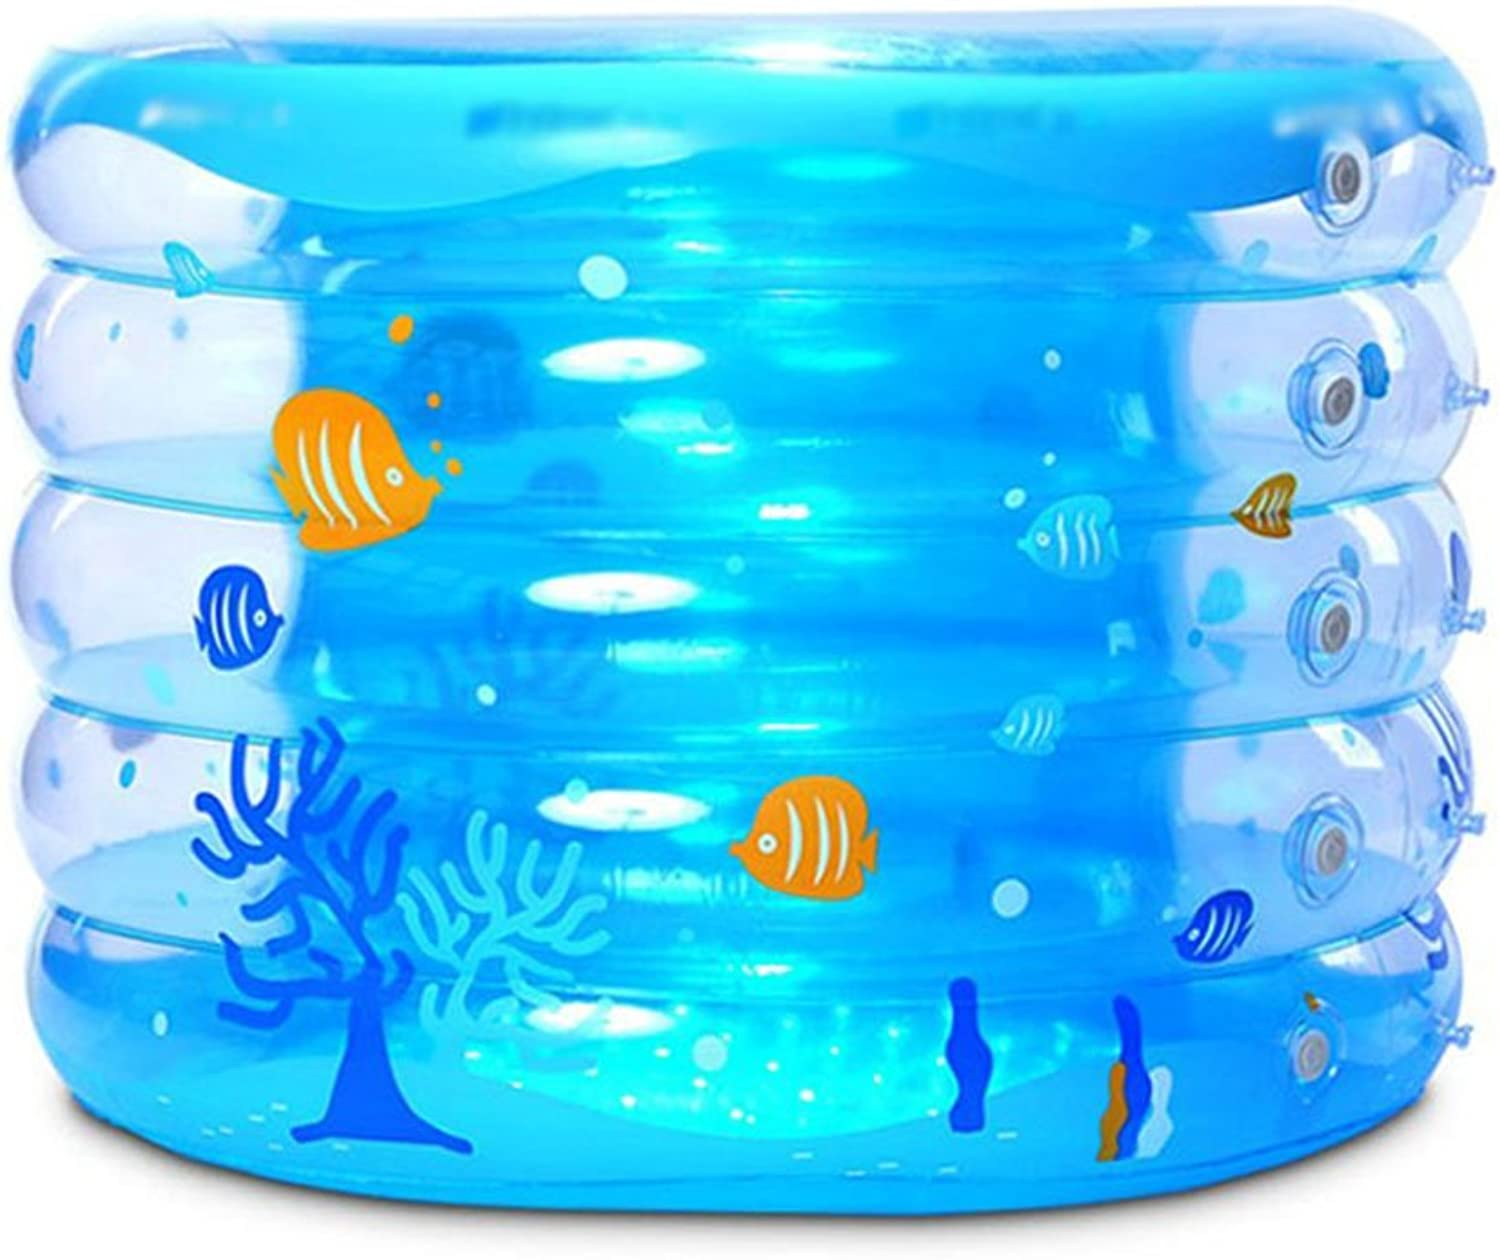 Bathtubs Soaking Baths Baby swimming pool Thicken inflatable Non-toxic environmental predection Good insulation effect 95 × 70cm (37.4  27.6 inches) (Size   Electric pump)